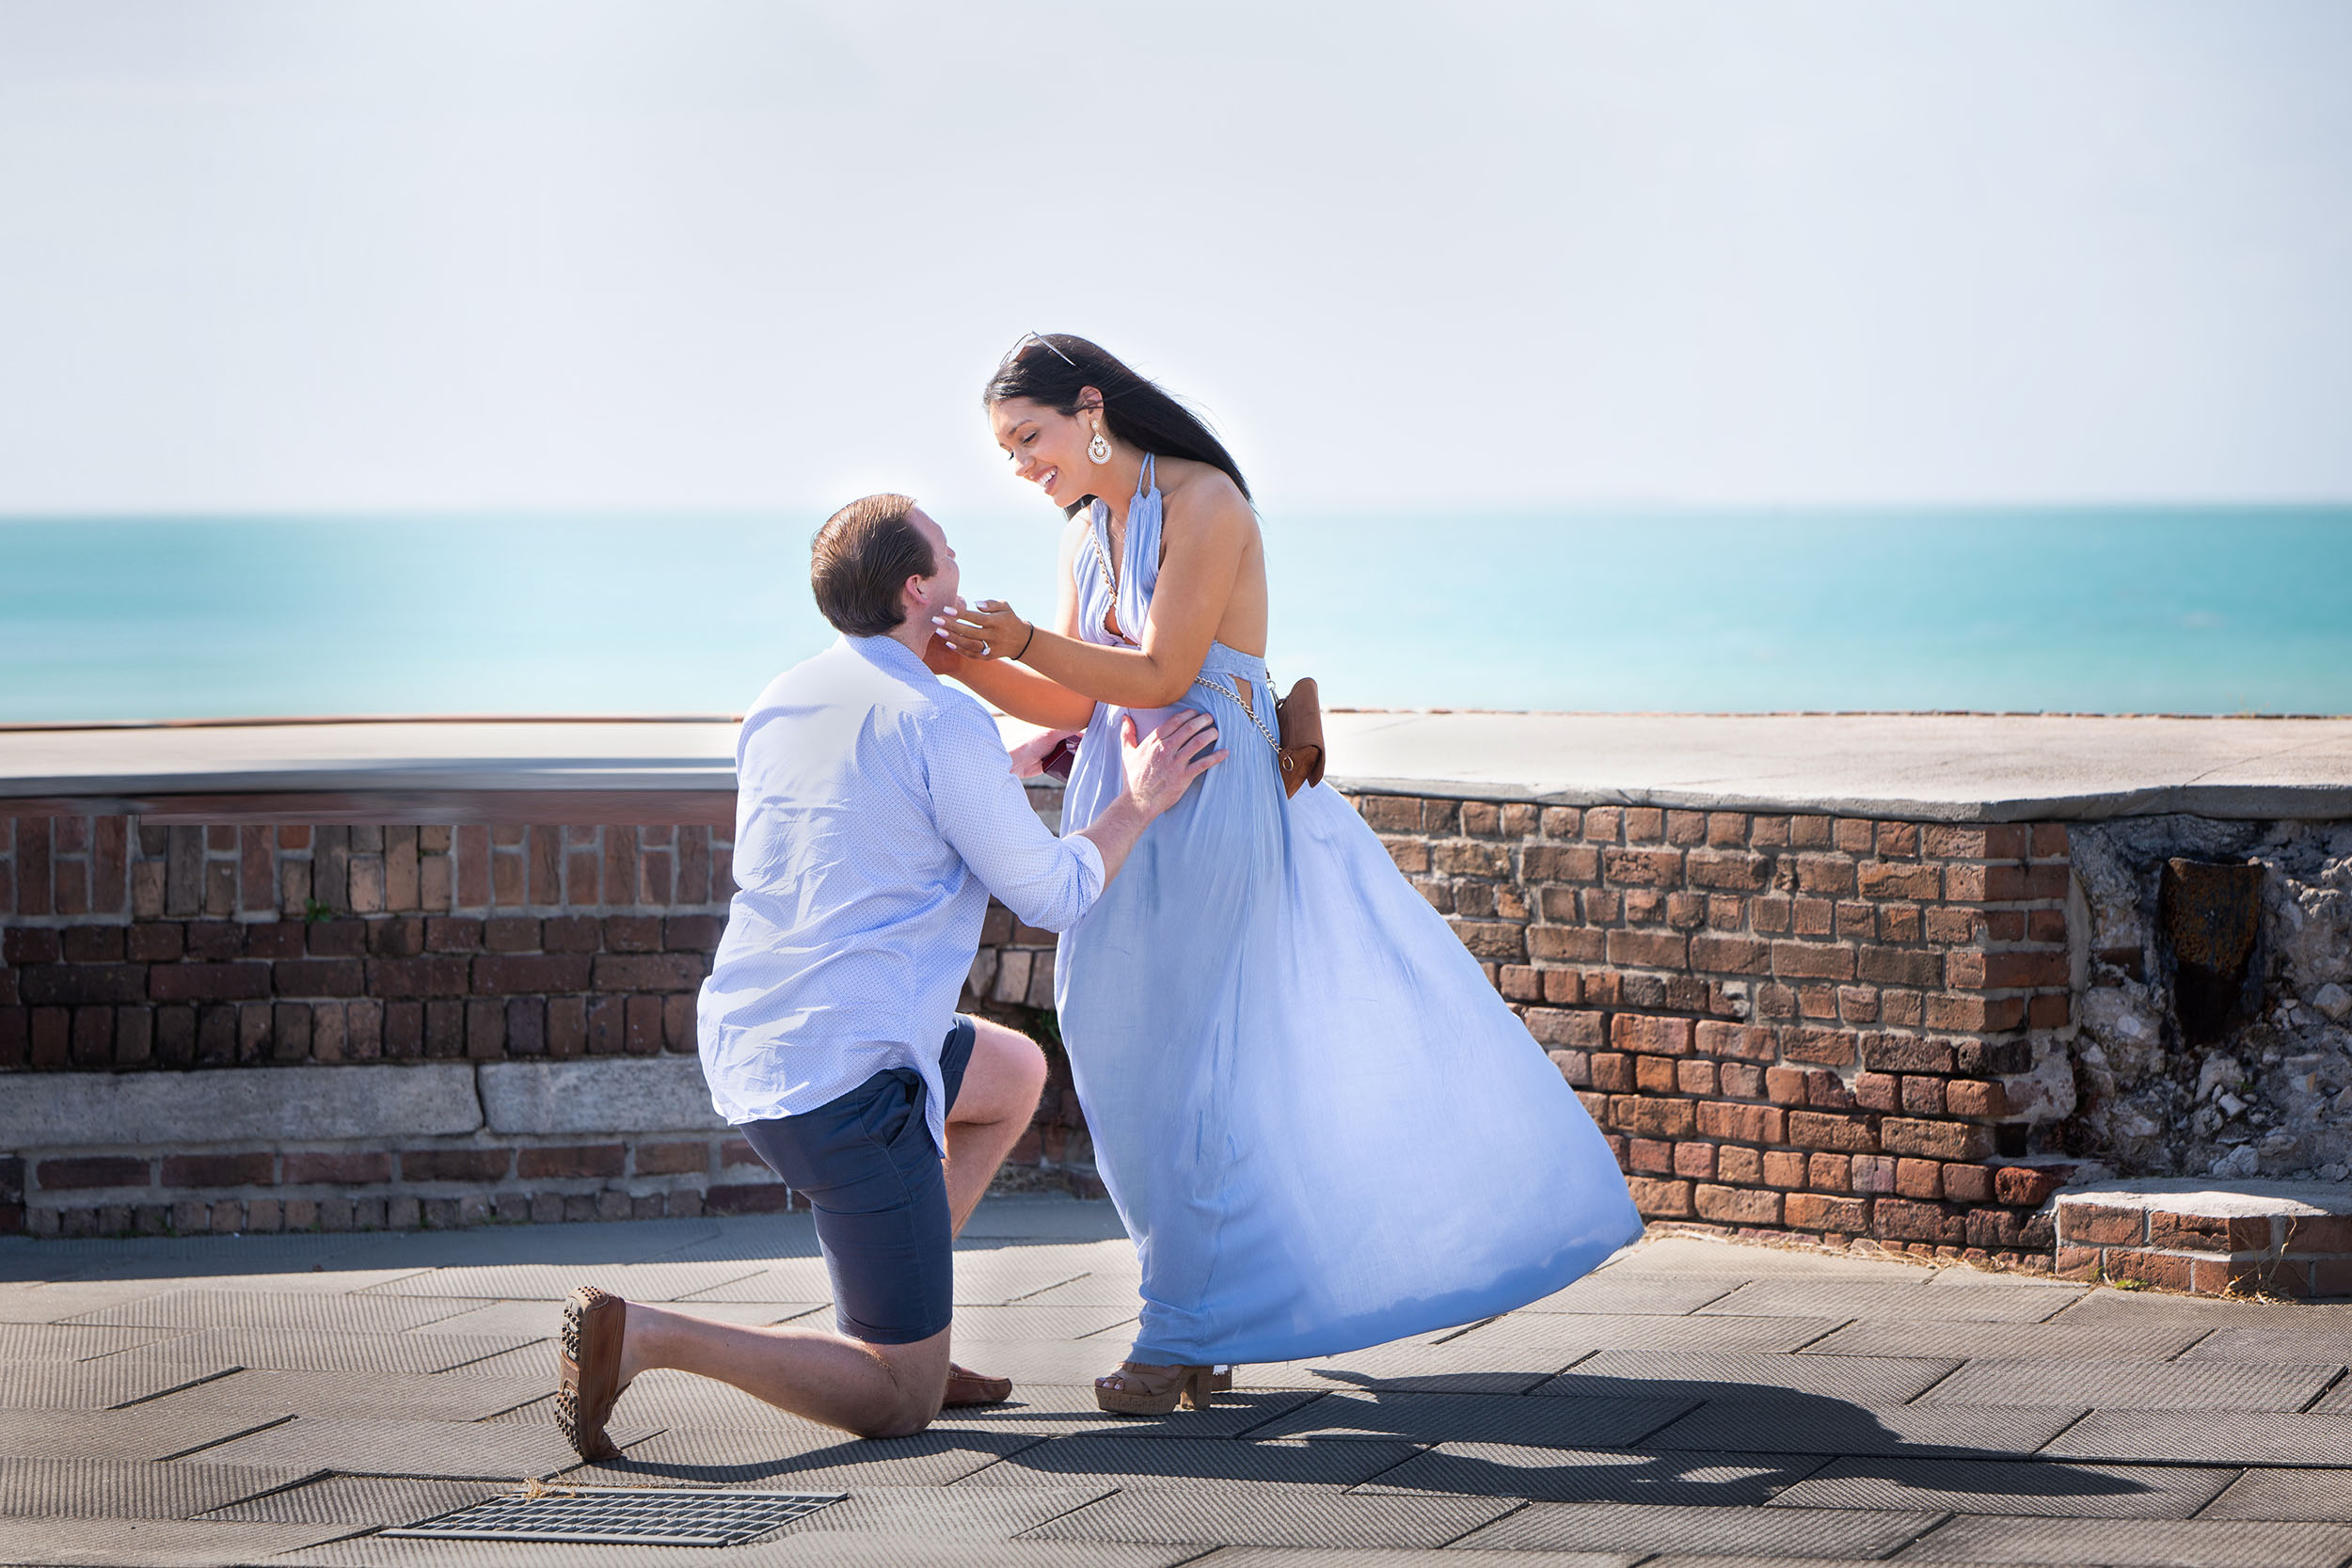 Asking the love of your life to marry you on top of a historic fortress in Key West overlooking the ocean